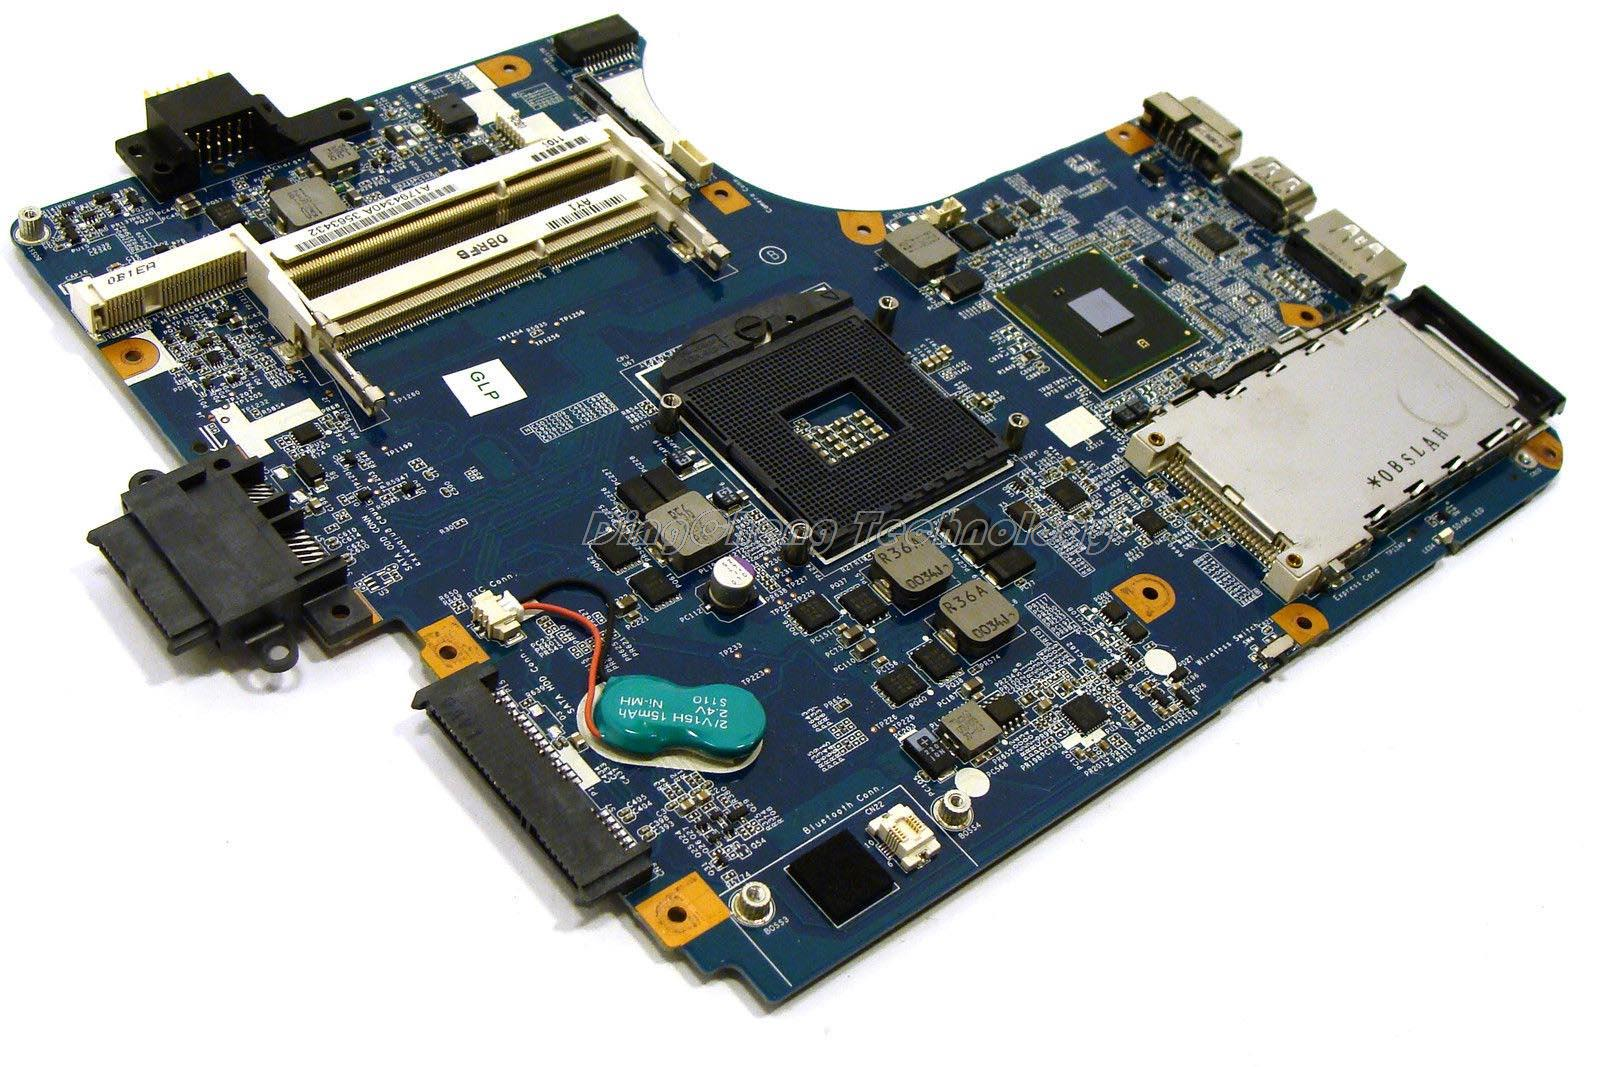 MBX 223 laptop Motherboard For Sony M971 MBX-223 1P-0106J00-6011 A1794340A REV 1.1 with integrated graphics cardMBX 223 laptop Motherboard For Sony M971 MBX-223 1P-0106J00-6011 A1794340A REV 1.1 with integrated graphics card